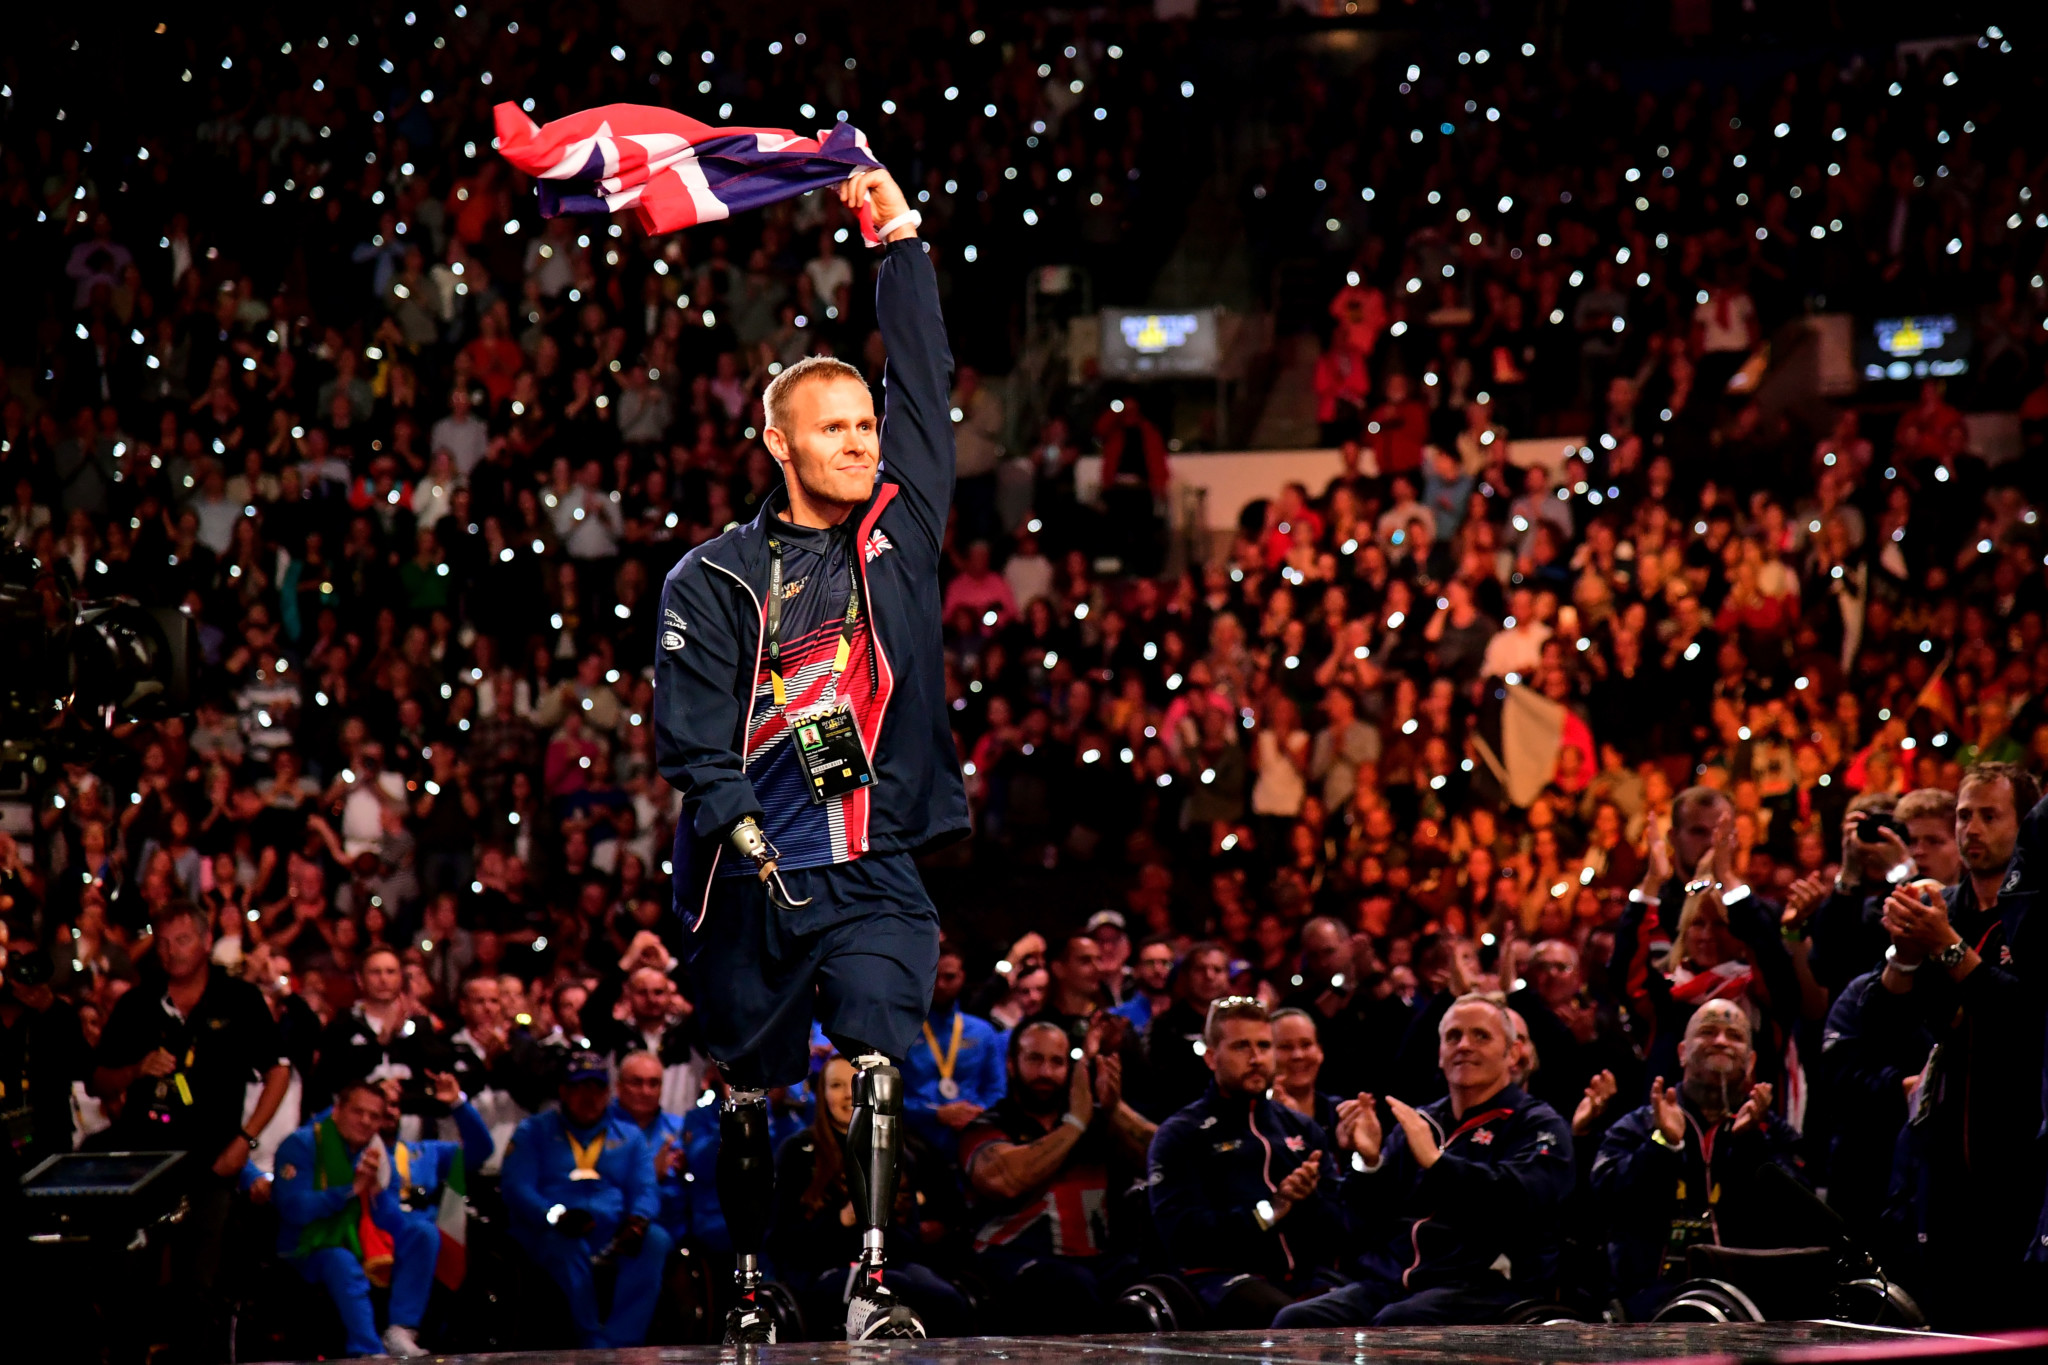 Mark Ormrod of the United Kingdom receives the Jaguar Award for Exceptional Performance during the closing ceremony of the Invictus Games 2017.  (Photo by Harry How/Getty Images)